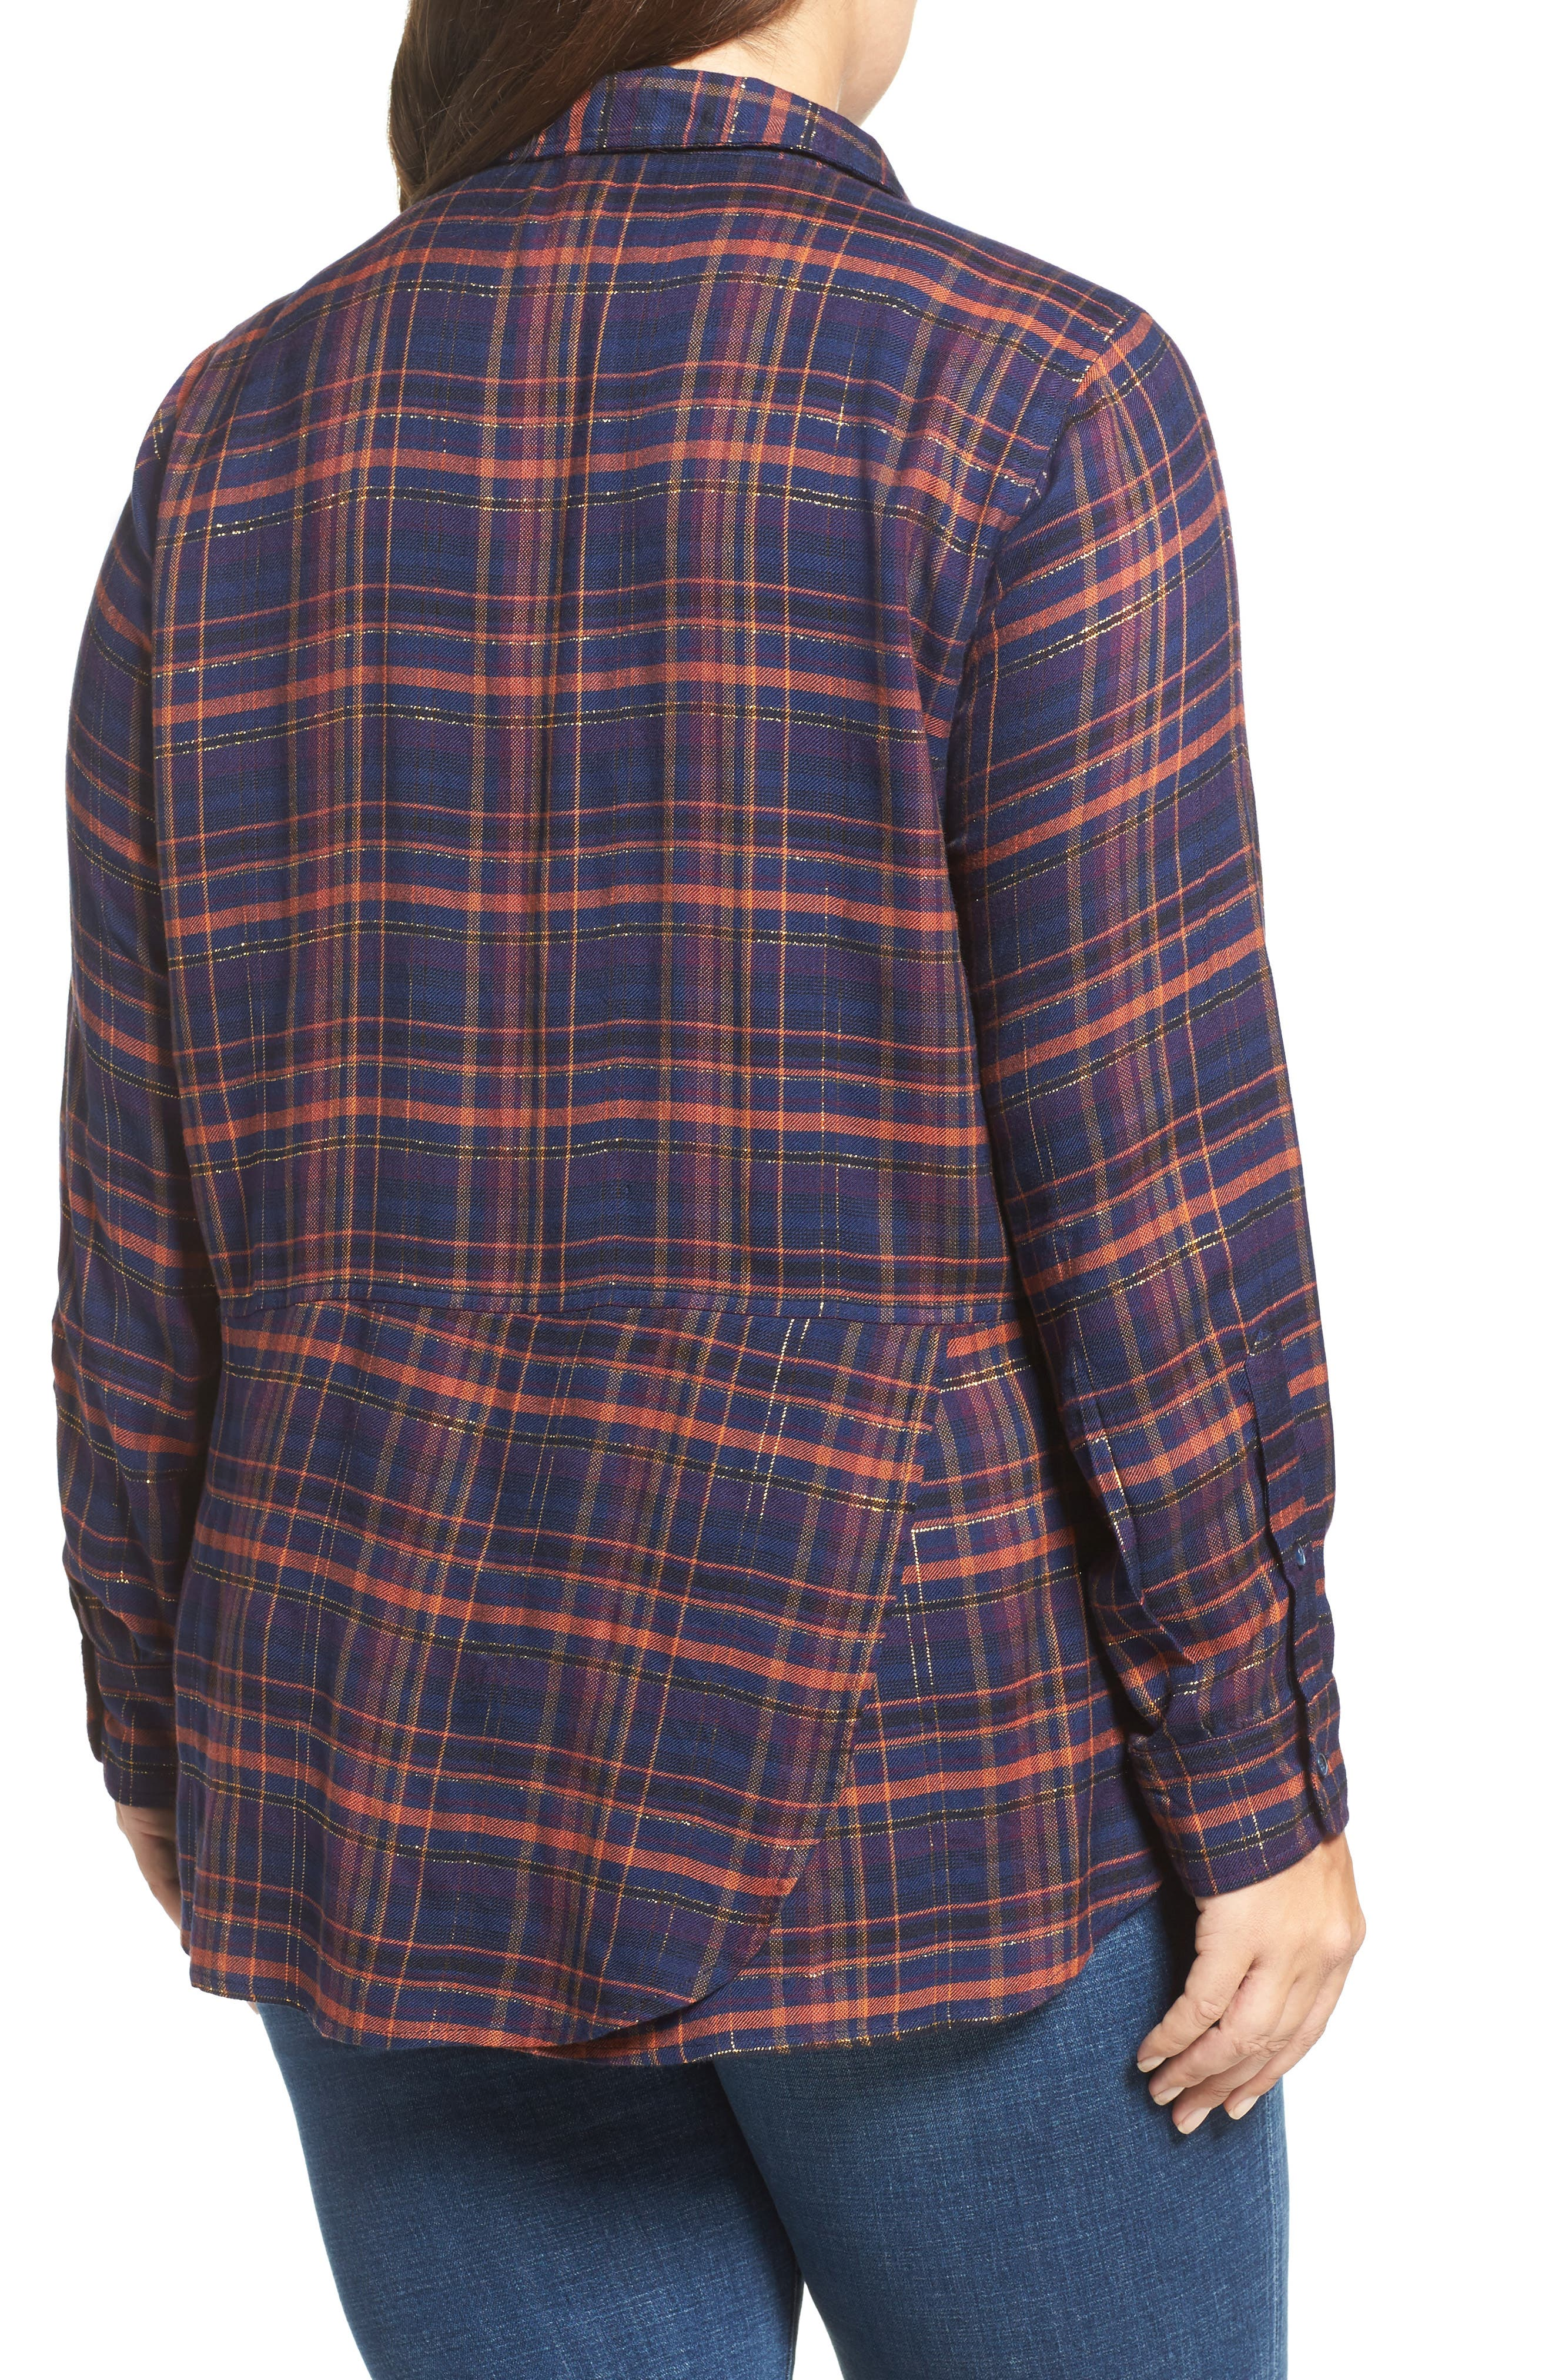 Back Overlay Plaid Shirt,                             Alternate thumbnail 3, color,                             460